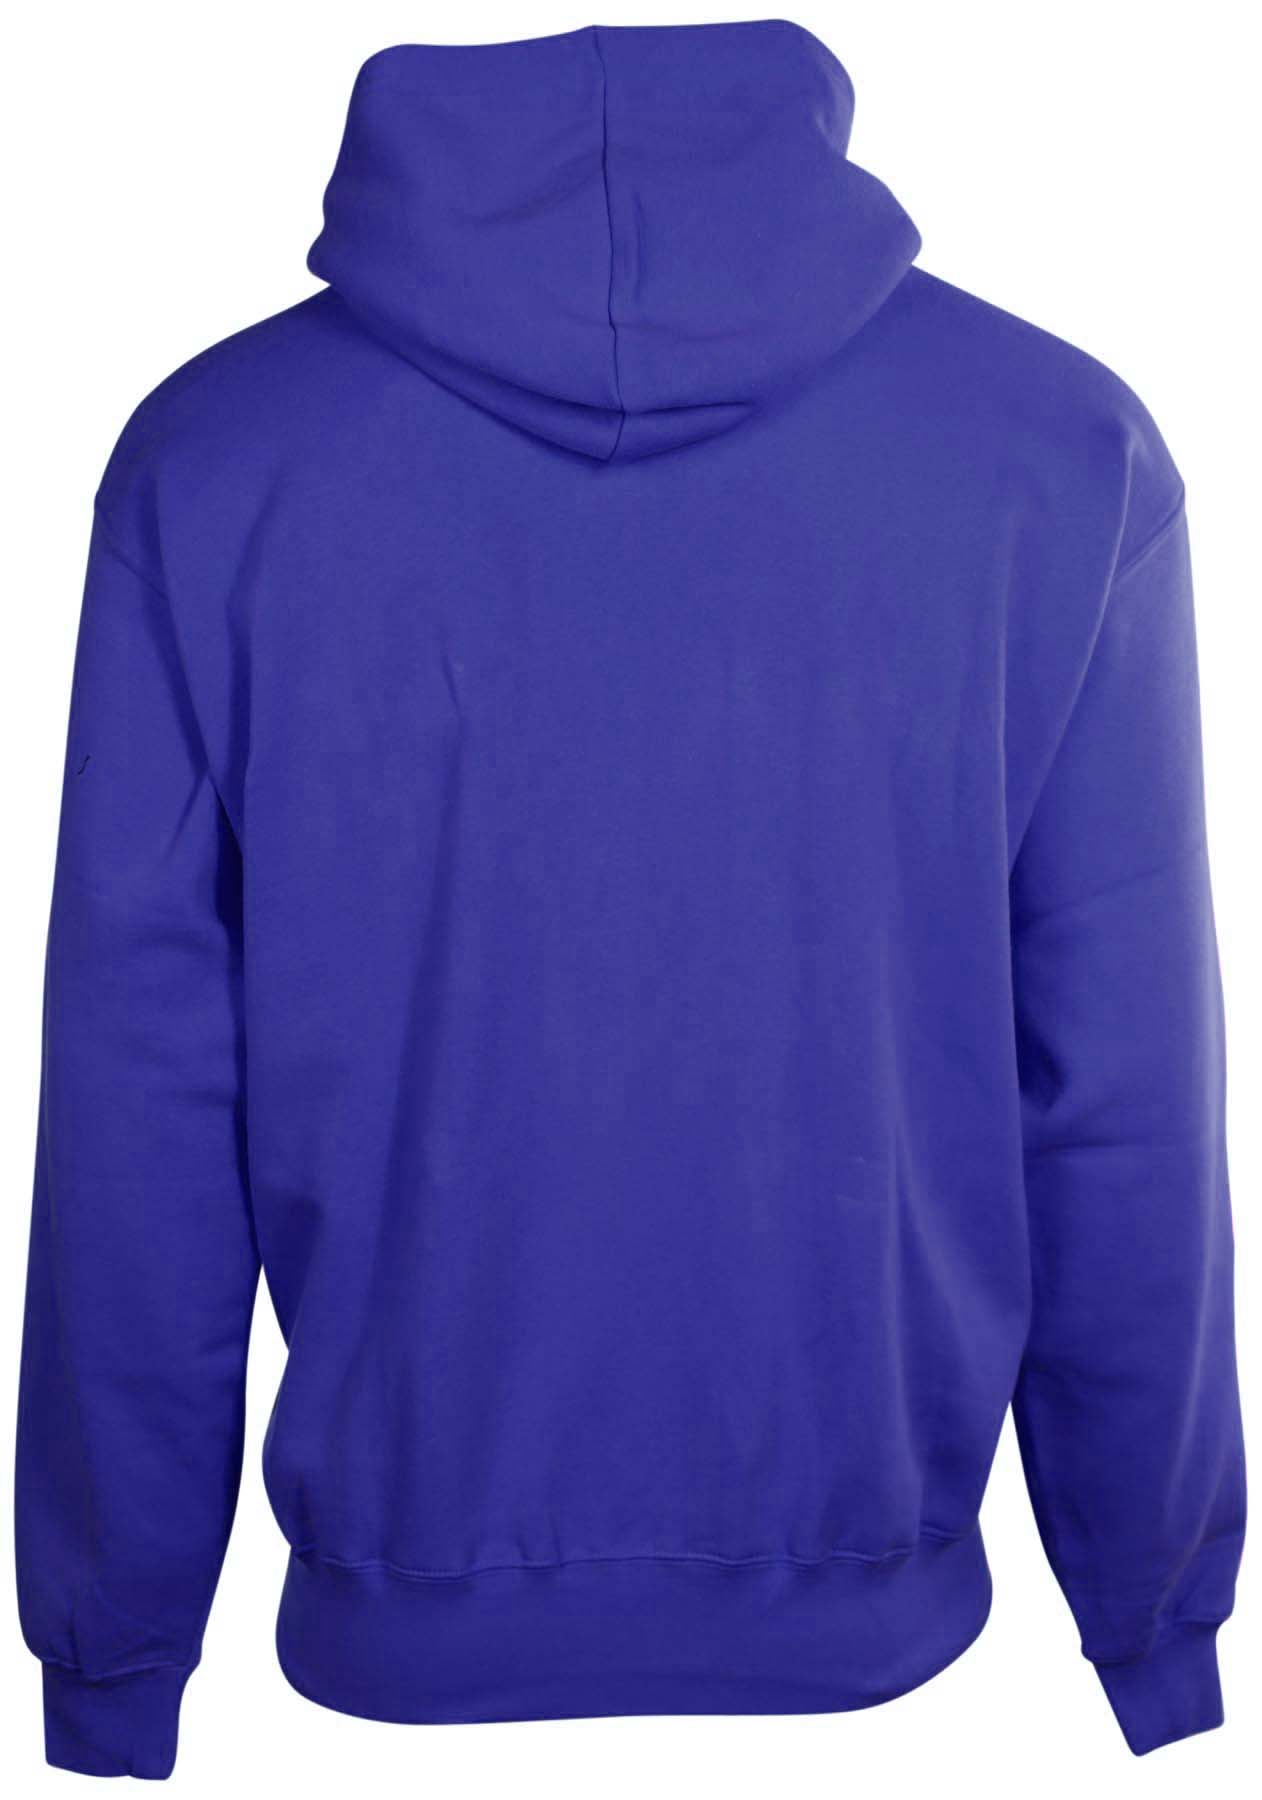 Nike Men's Team Classic Fleece Pullover Hoodie | eBay